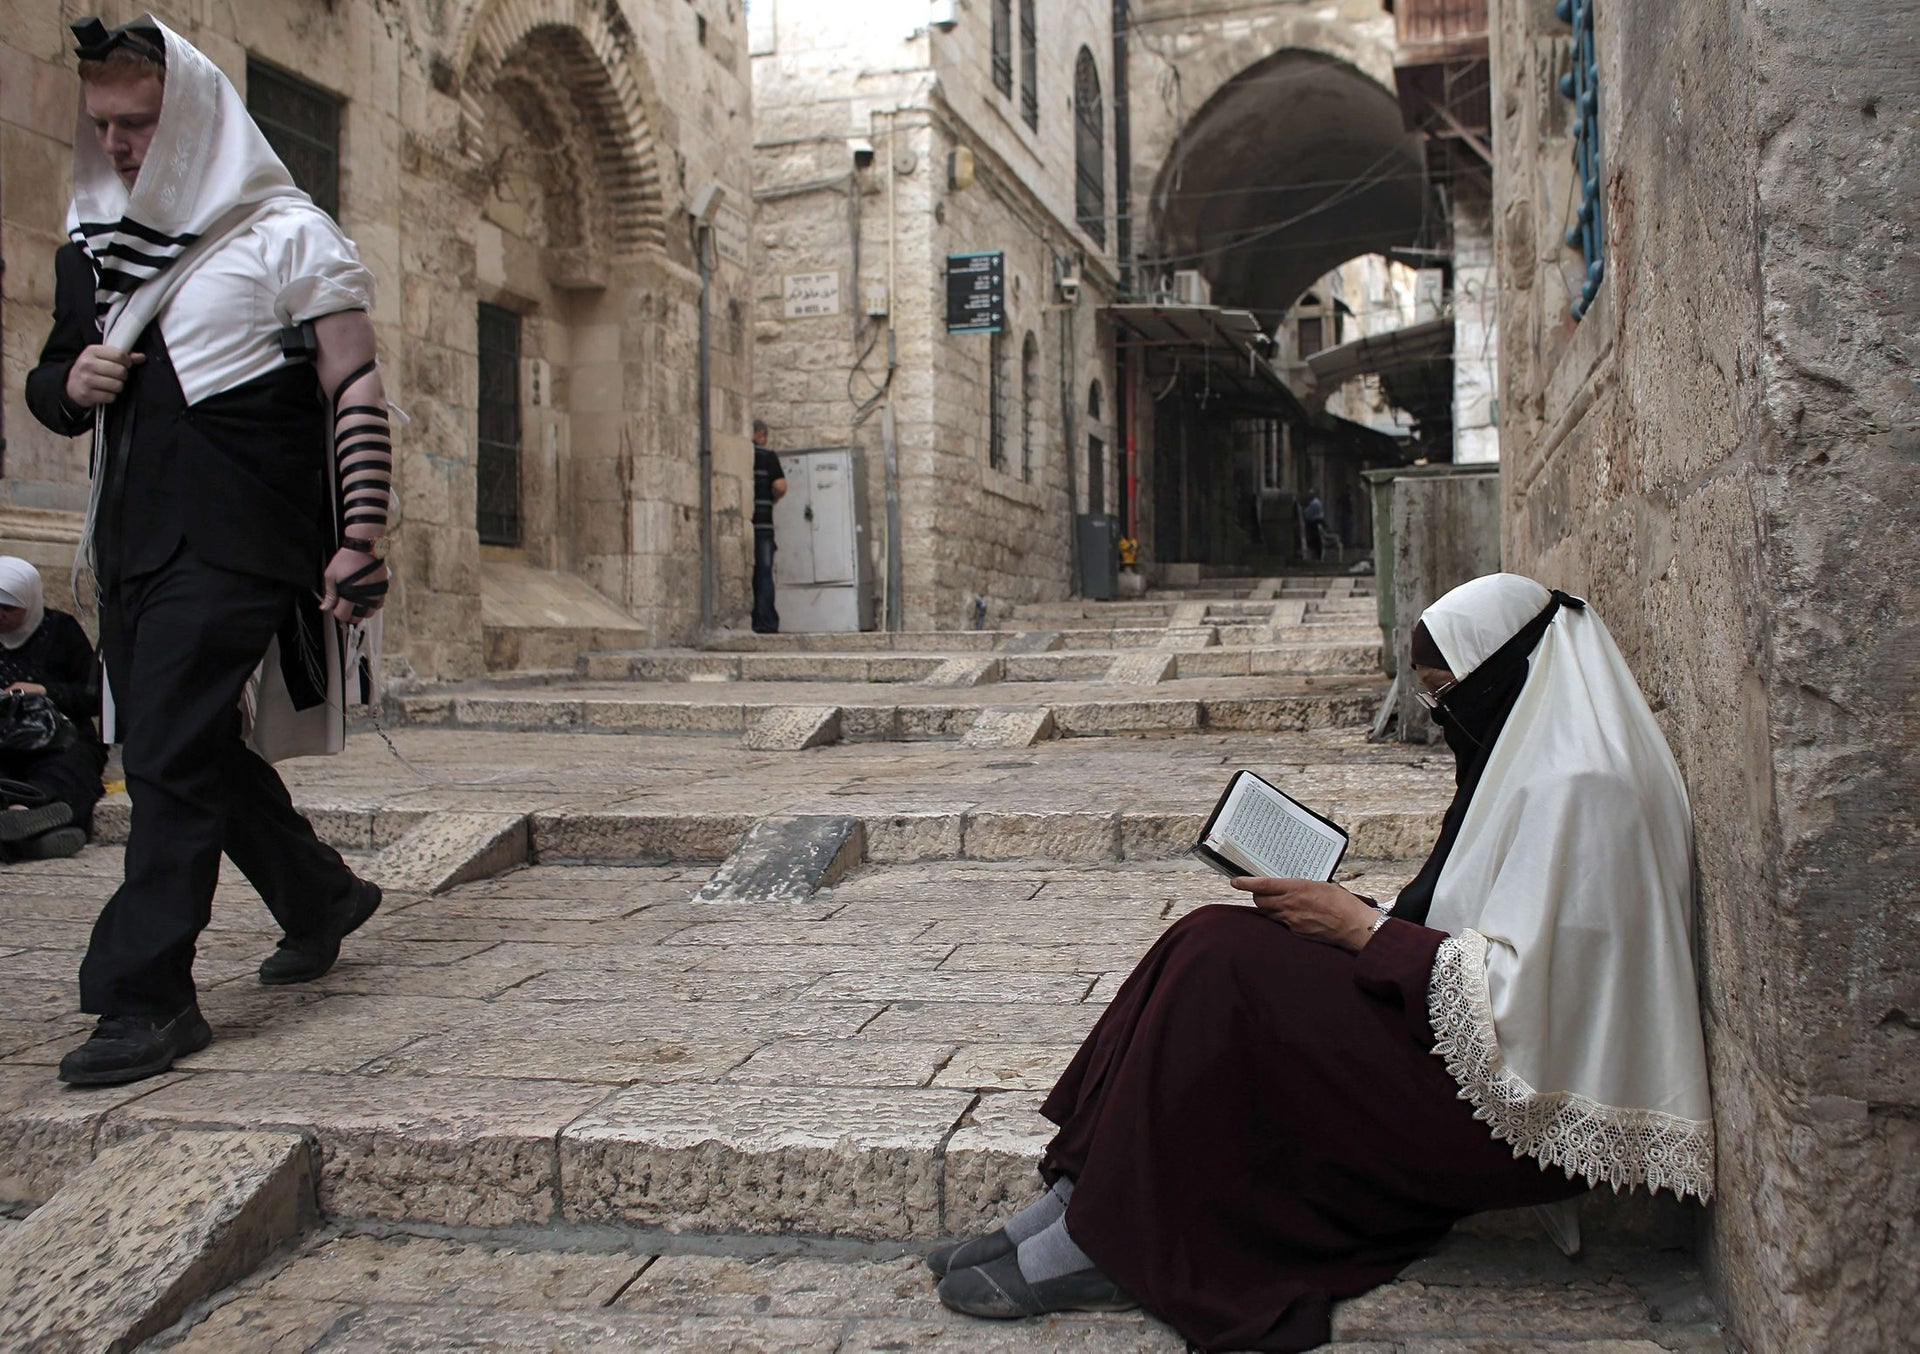 A Palestinian woman belonging to a group who call themselves Murabitat reads a copy of the Kuran, Islam's holy book, as a Jewish Orthodox man walks past her in Jerusalem's Old City on September 10, 2015. Israeli Defence Minister Moshe Yaalon announced on September 9 that he has outlawed The Murabitat (for females) and Murabitun groups which are made up of east Jerusalem Palestinians and Israeli Arabs, some of whom are funded by the Islamic Movement's radical northern wing, who confront Jewish visitors to the volatile Al-Aqsa mosque complex, considered Islam's third holiest shrine. Under the new legal conditions, anyone who organises, finances or participates in the groups' activities could face trial. Non-Muslims are allowed to visit the compound, but Jews are forbidden from praying or displaying national symbols for fear of triggering tensions with Muslim worshippers.